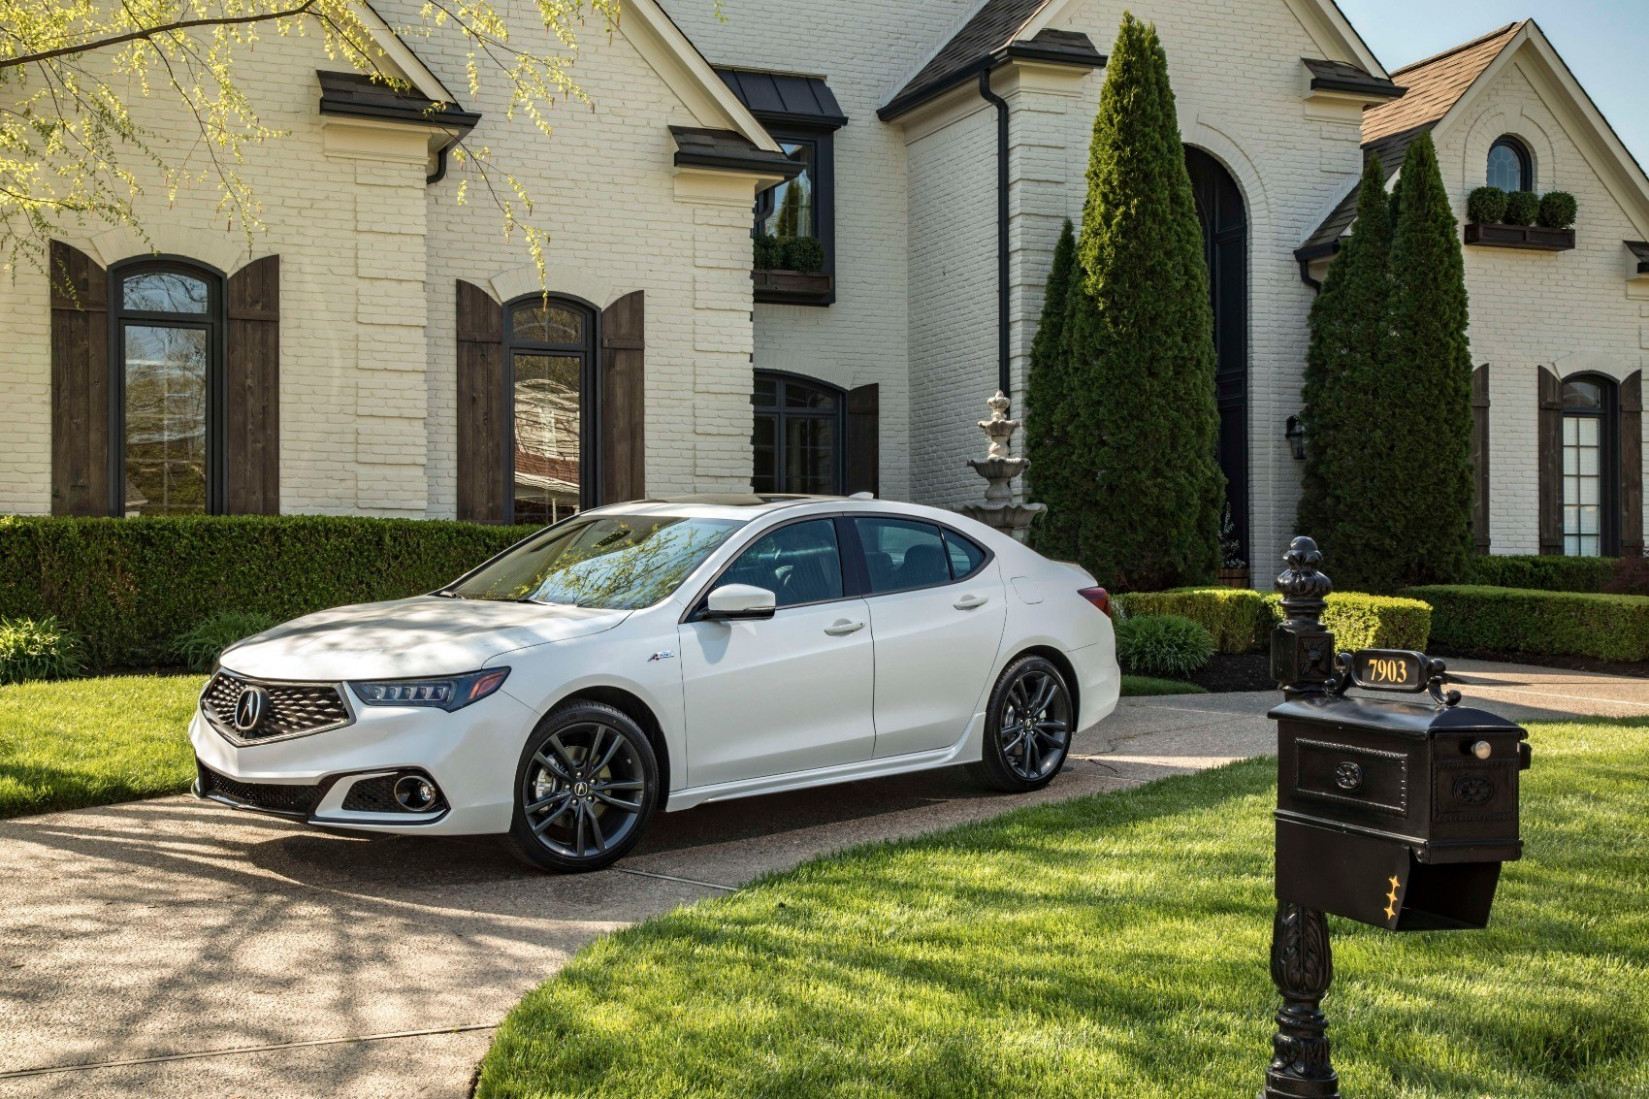 7 Acura TLX: Letting Those Colors Fly! - 2020 acura tlx v6